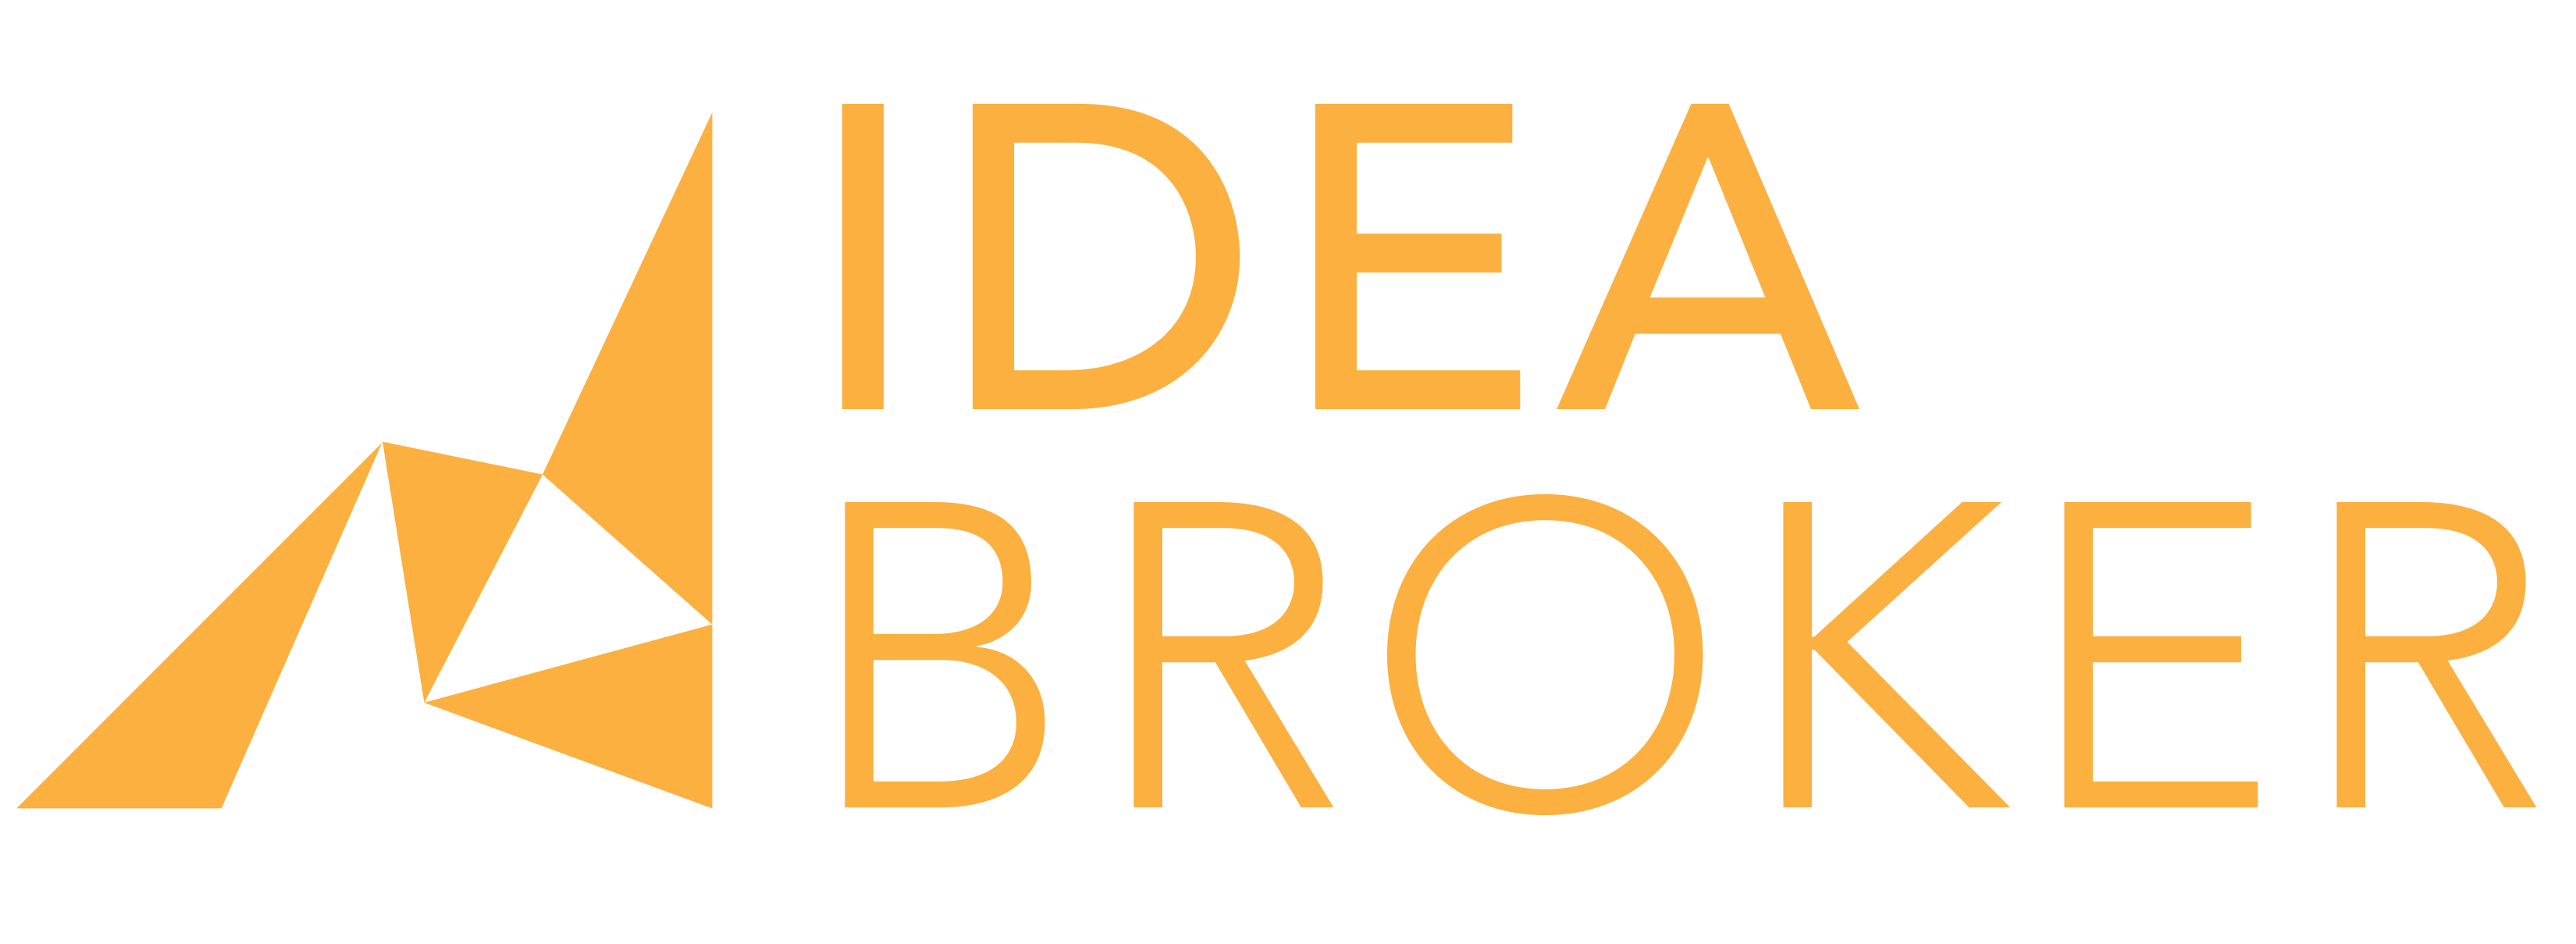 Idea Broker Logo